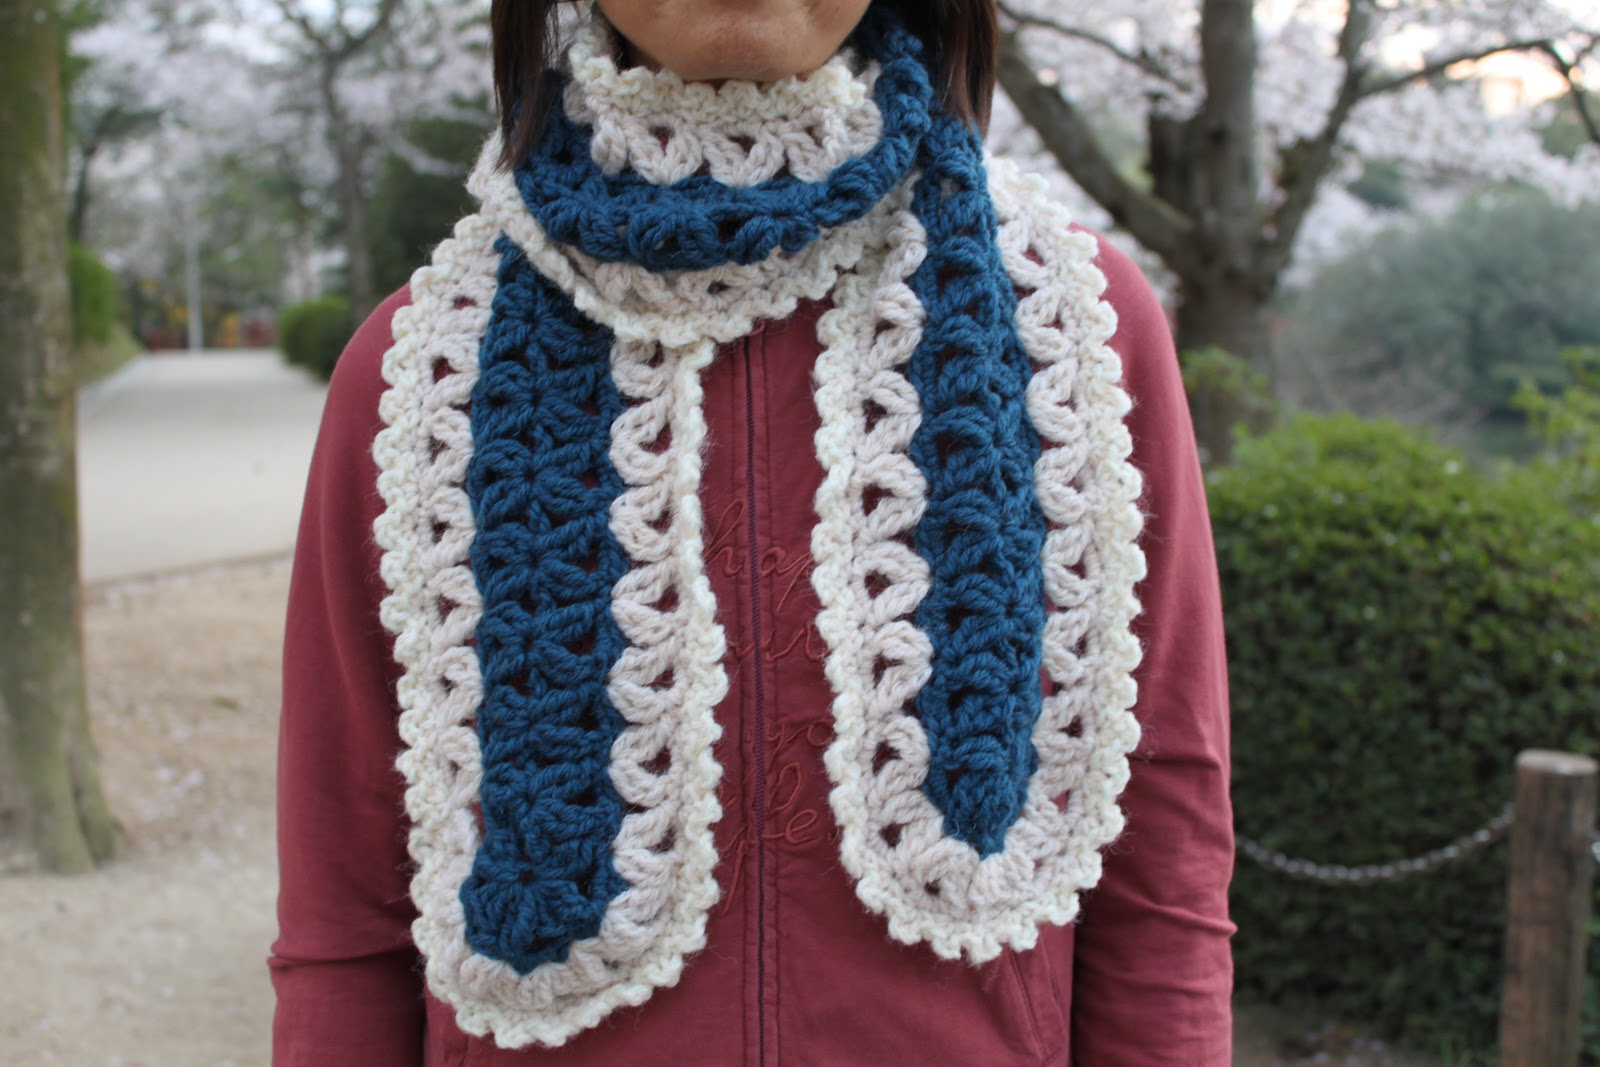 Casual Crafting Journal: Crochet Mile a Minute Scarf